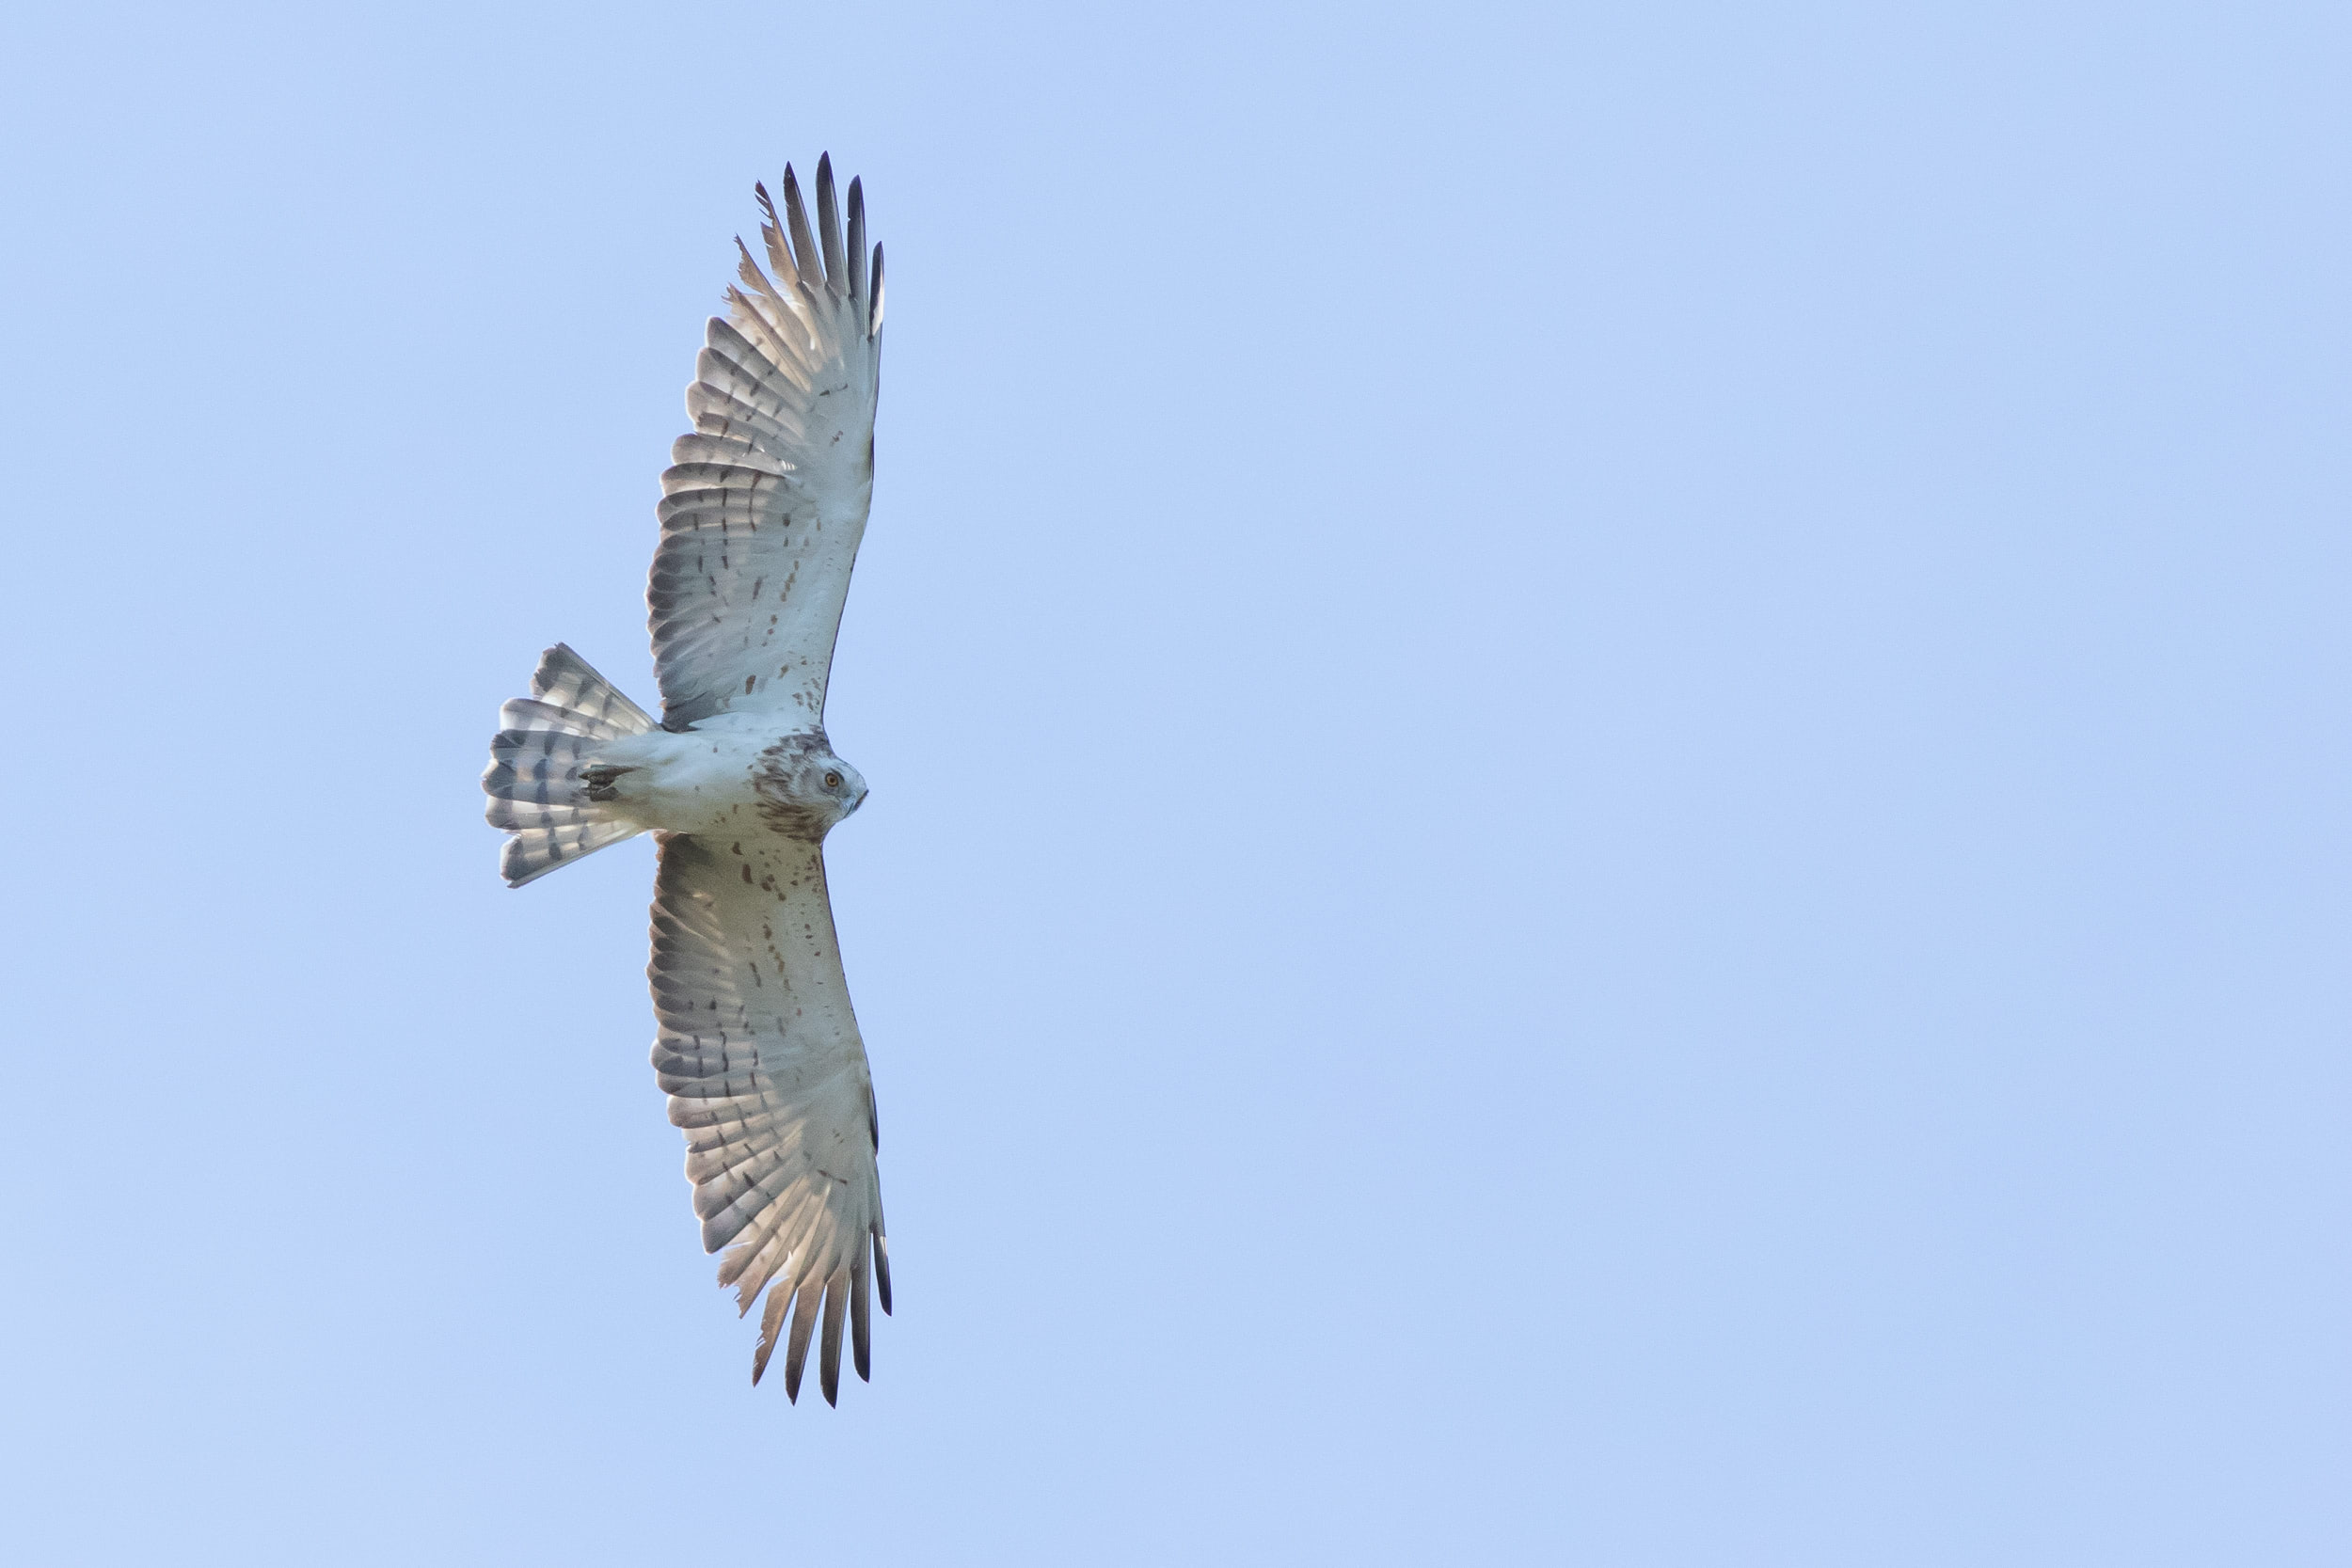 Short-toed Eagle passing by closely. Photo by Diego Jansen.